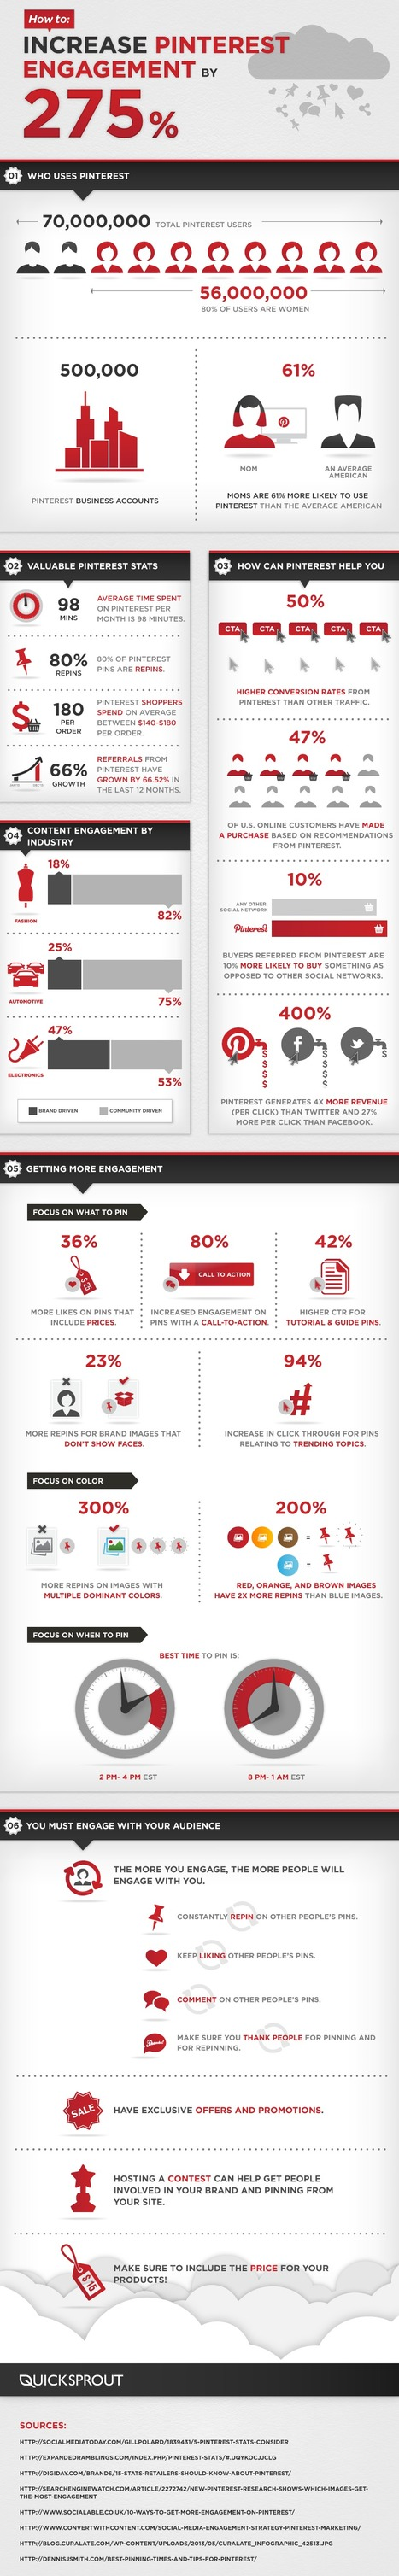 How to Increase Your Pinterest Engagement by 275% [Infographic] | DV8 Digital Marketing Tips and Insight | Scoop.it